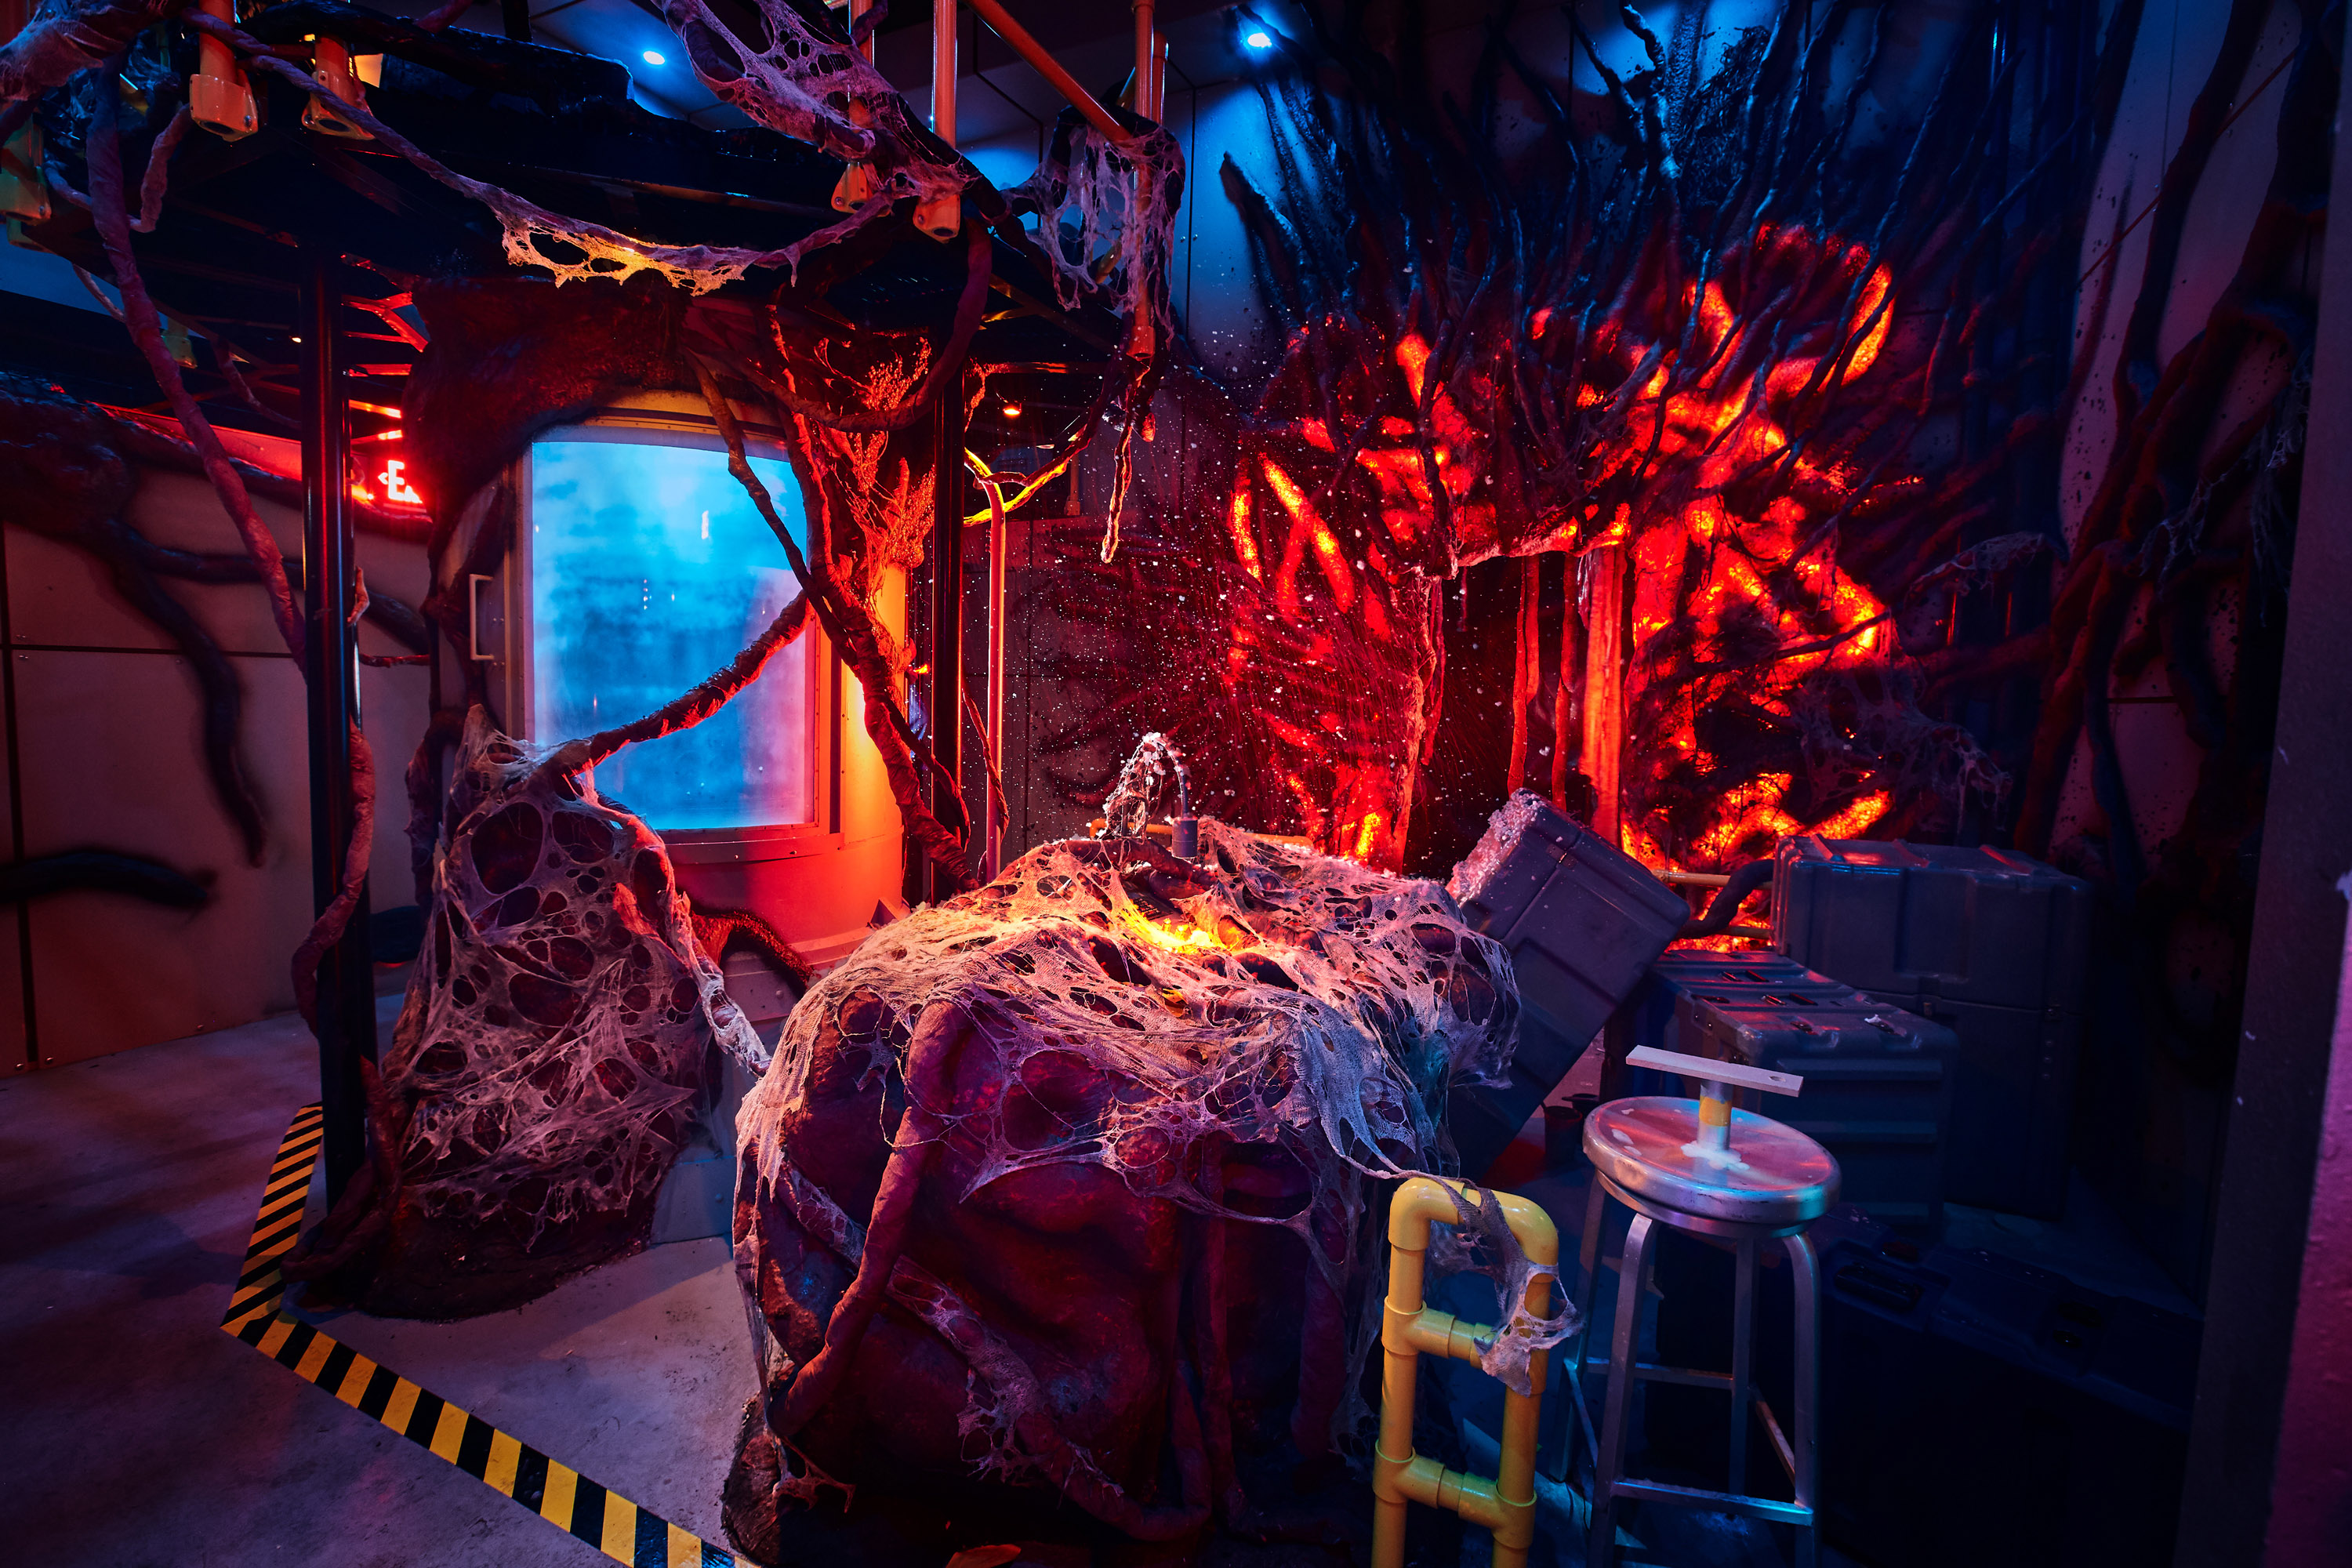 Universal Studios Reveals First Look Inside The Stranger